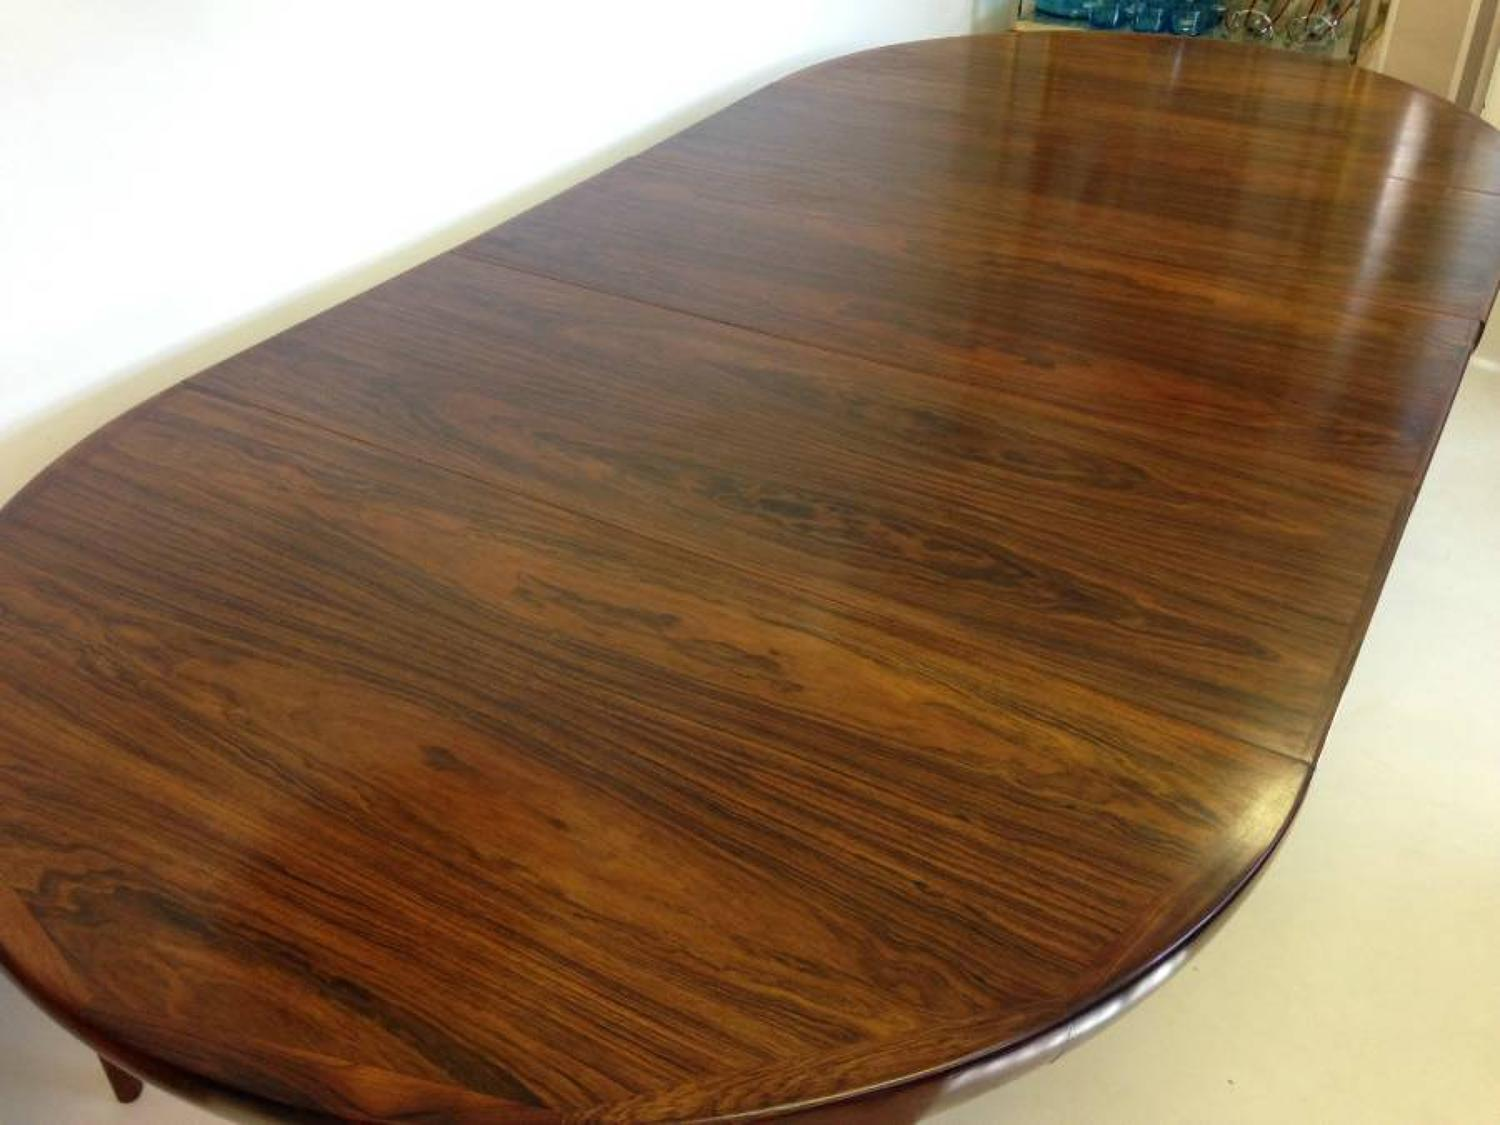 Extra large Danish rosewood dining table